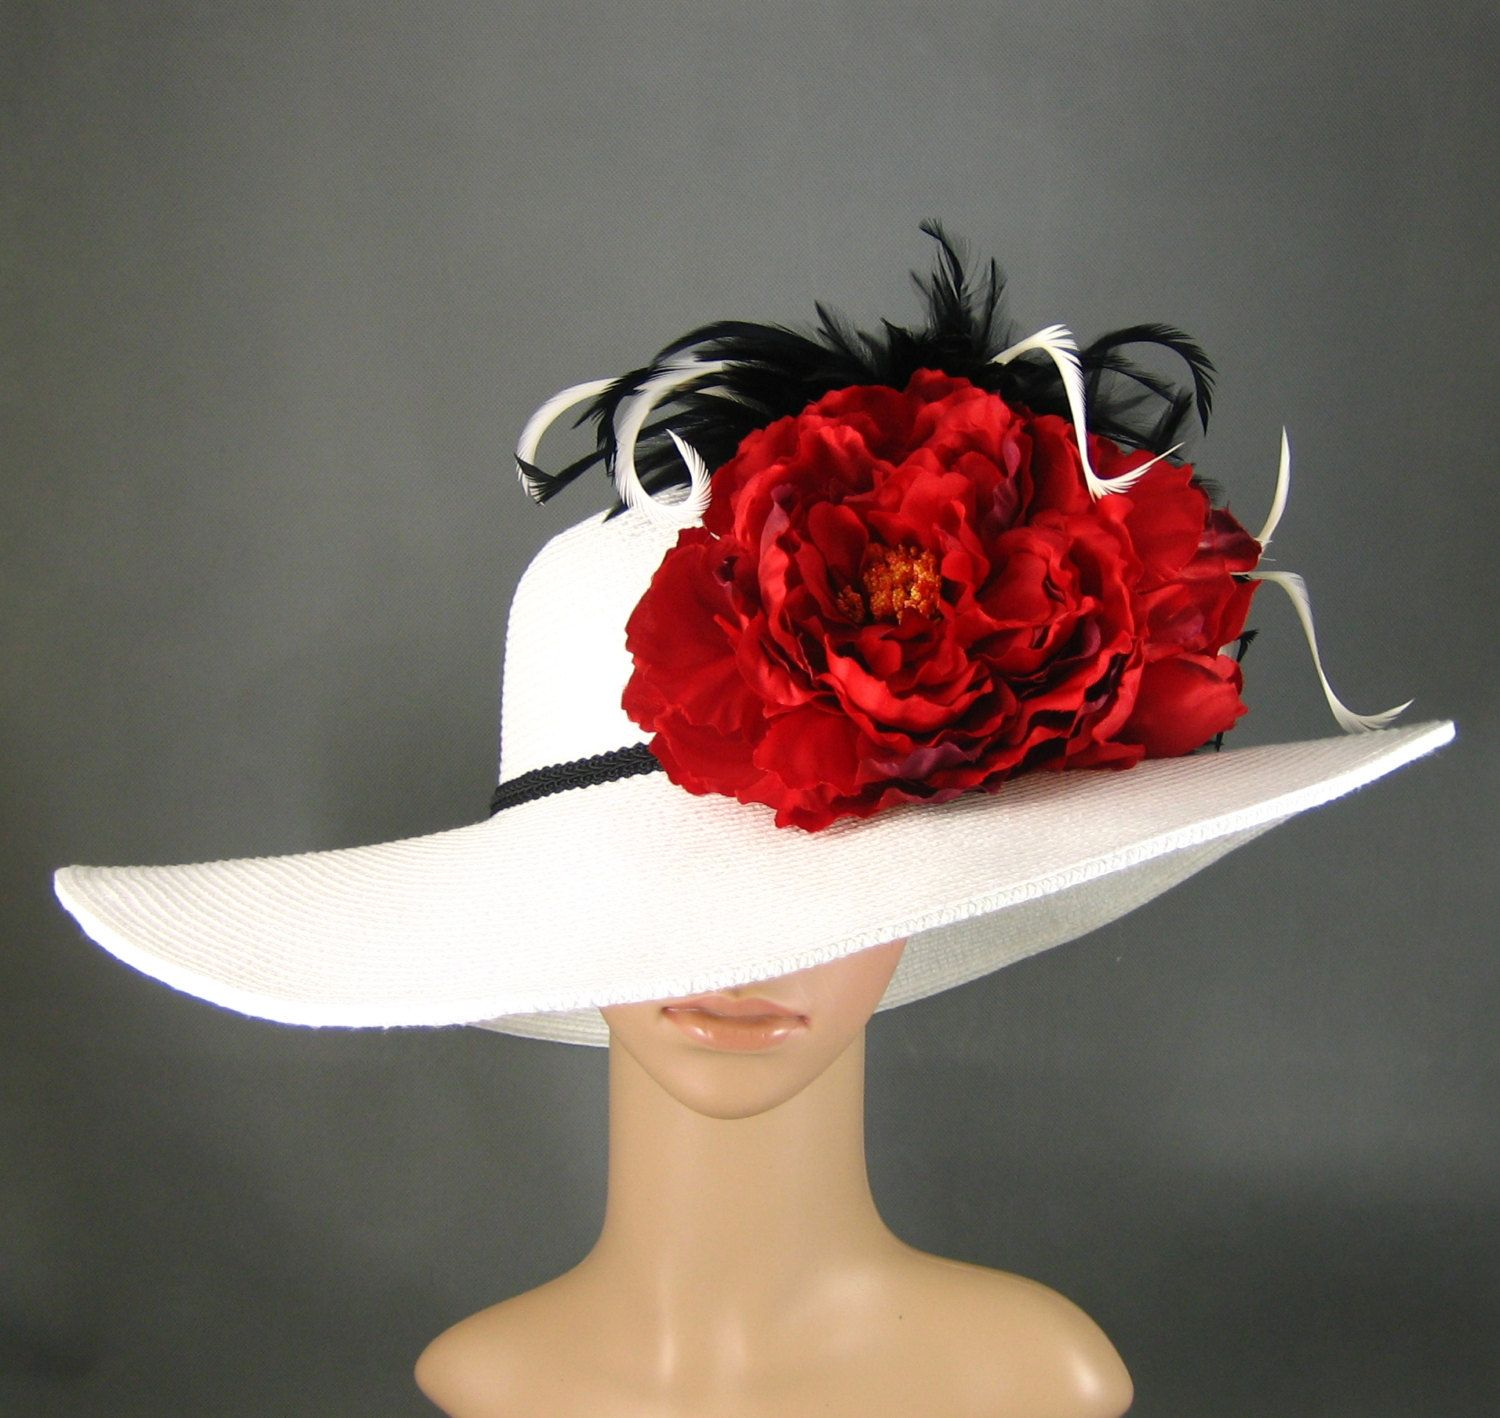 WHITE Kentucky Derby Hat Derby Hat Wedding Hat Dress Hat Church Hat Wide  Brim Hat with two Red Flowers Tea Party Ascot with Feathers.  84.00 3f2a5cab4be1